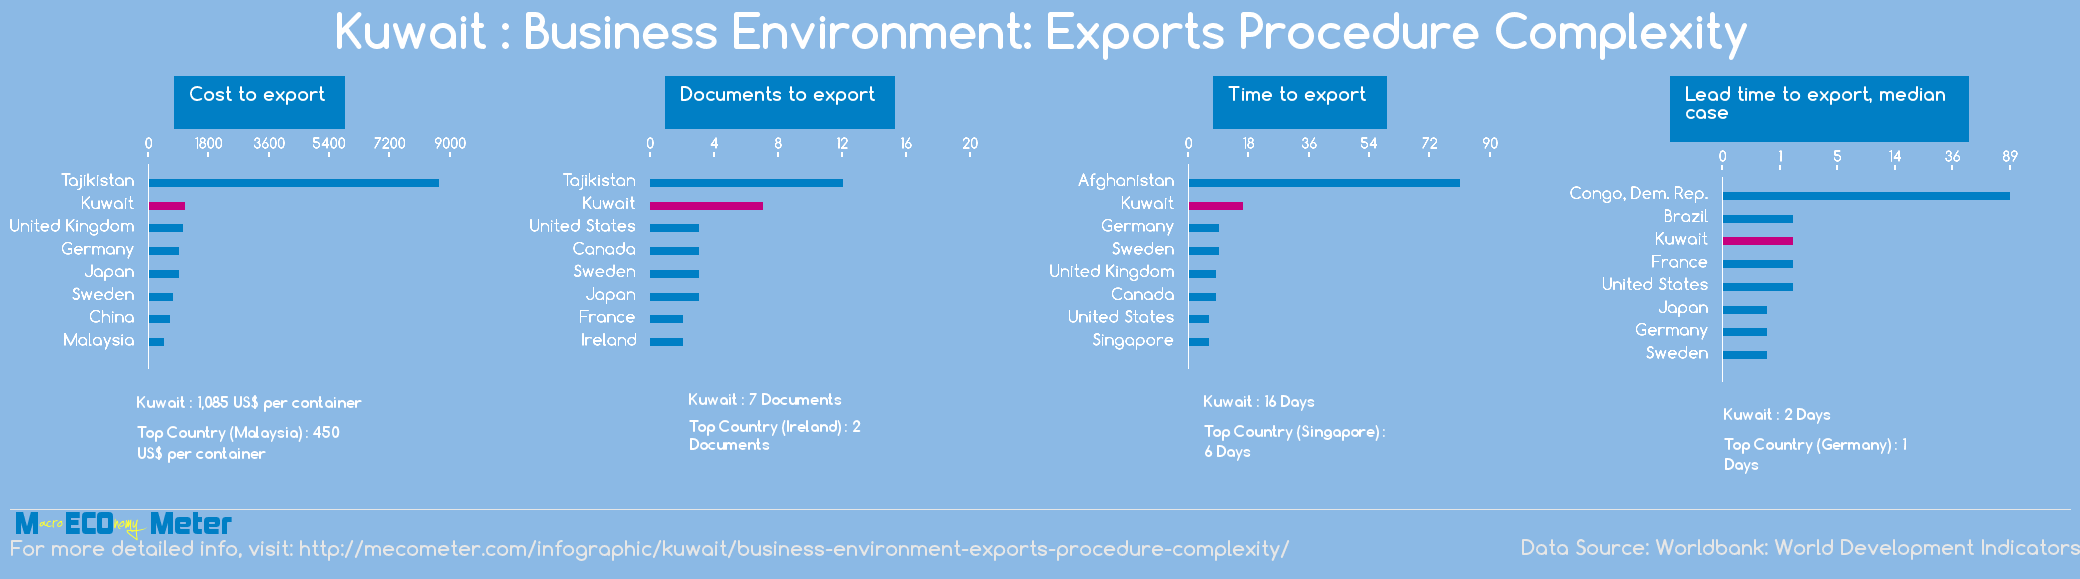 Kuwait : Business Environment: Exports Procedure Complexity